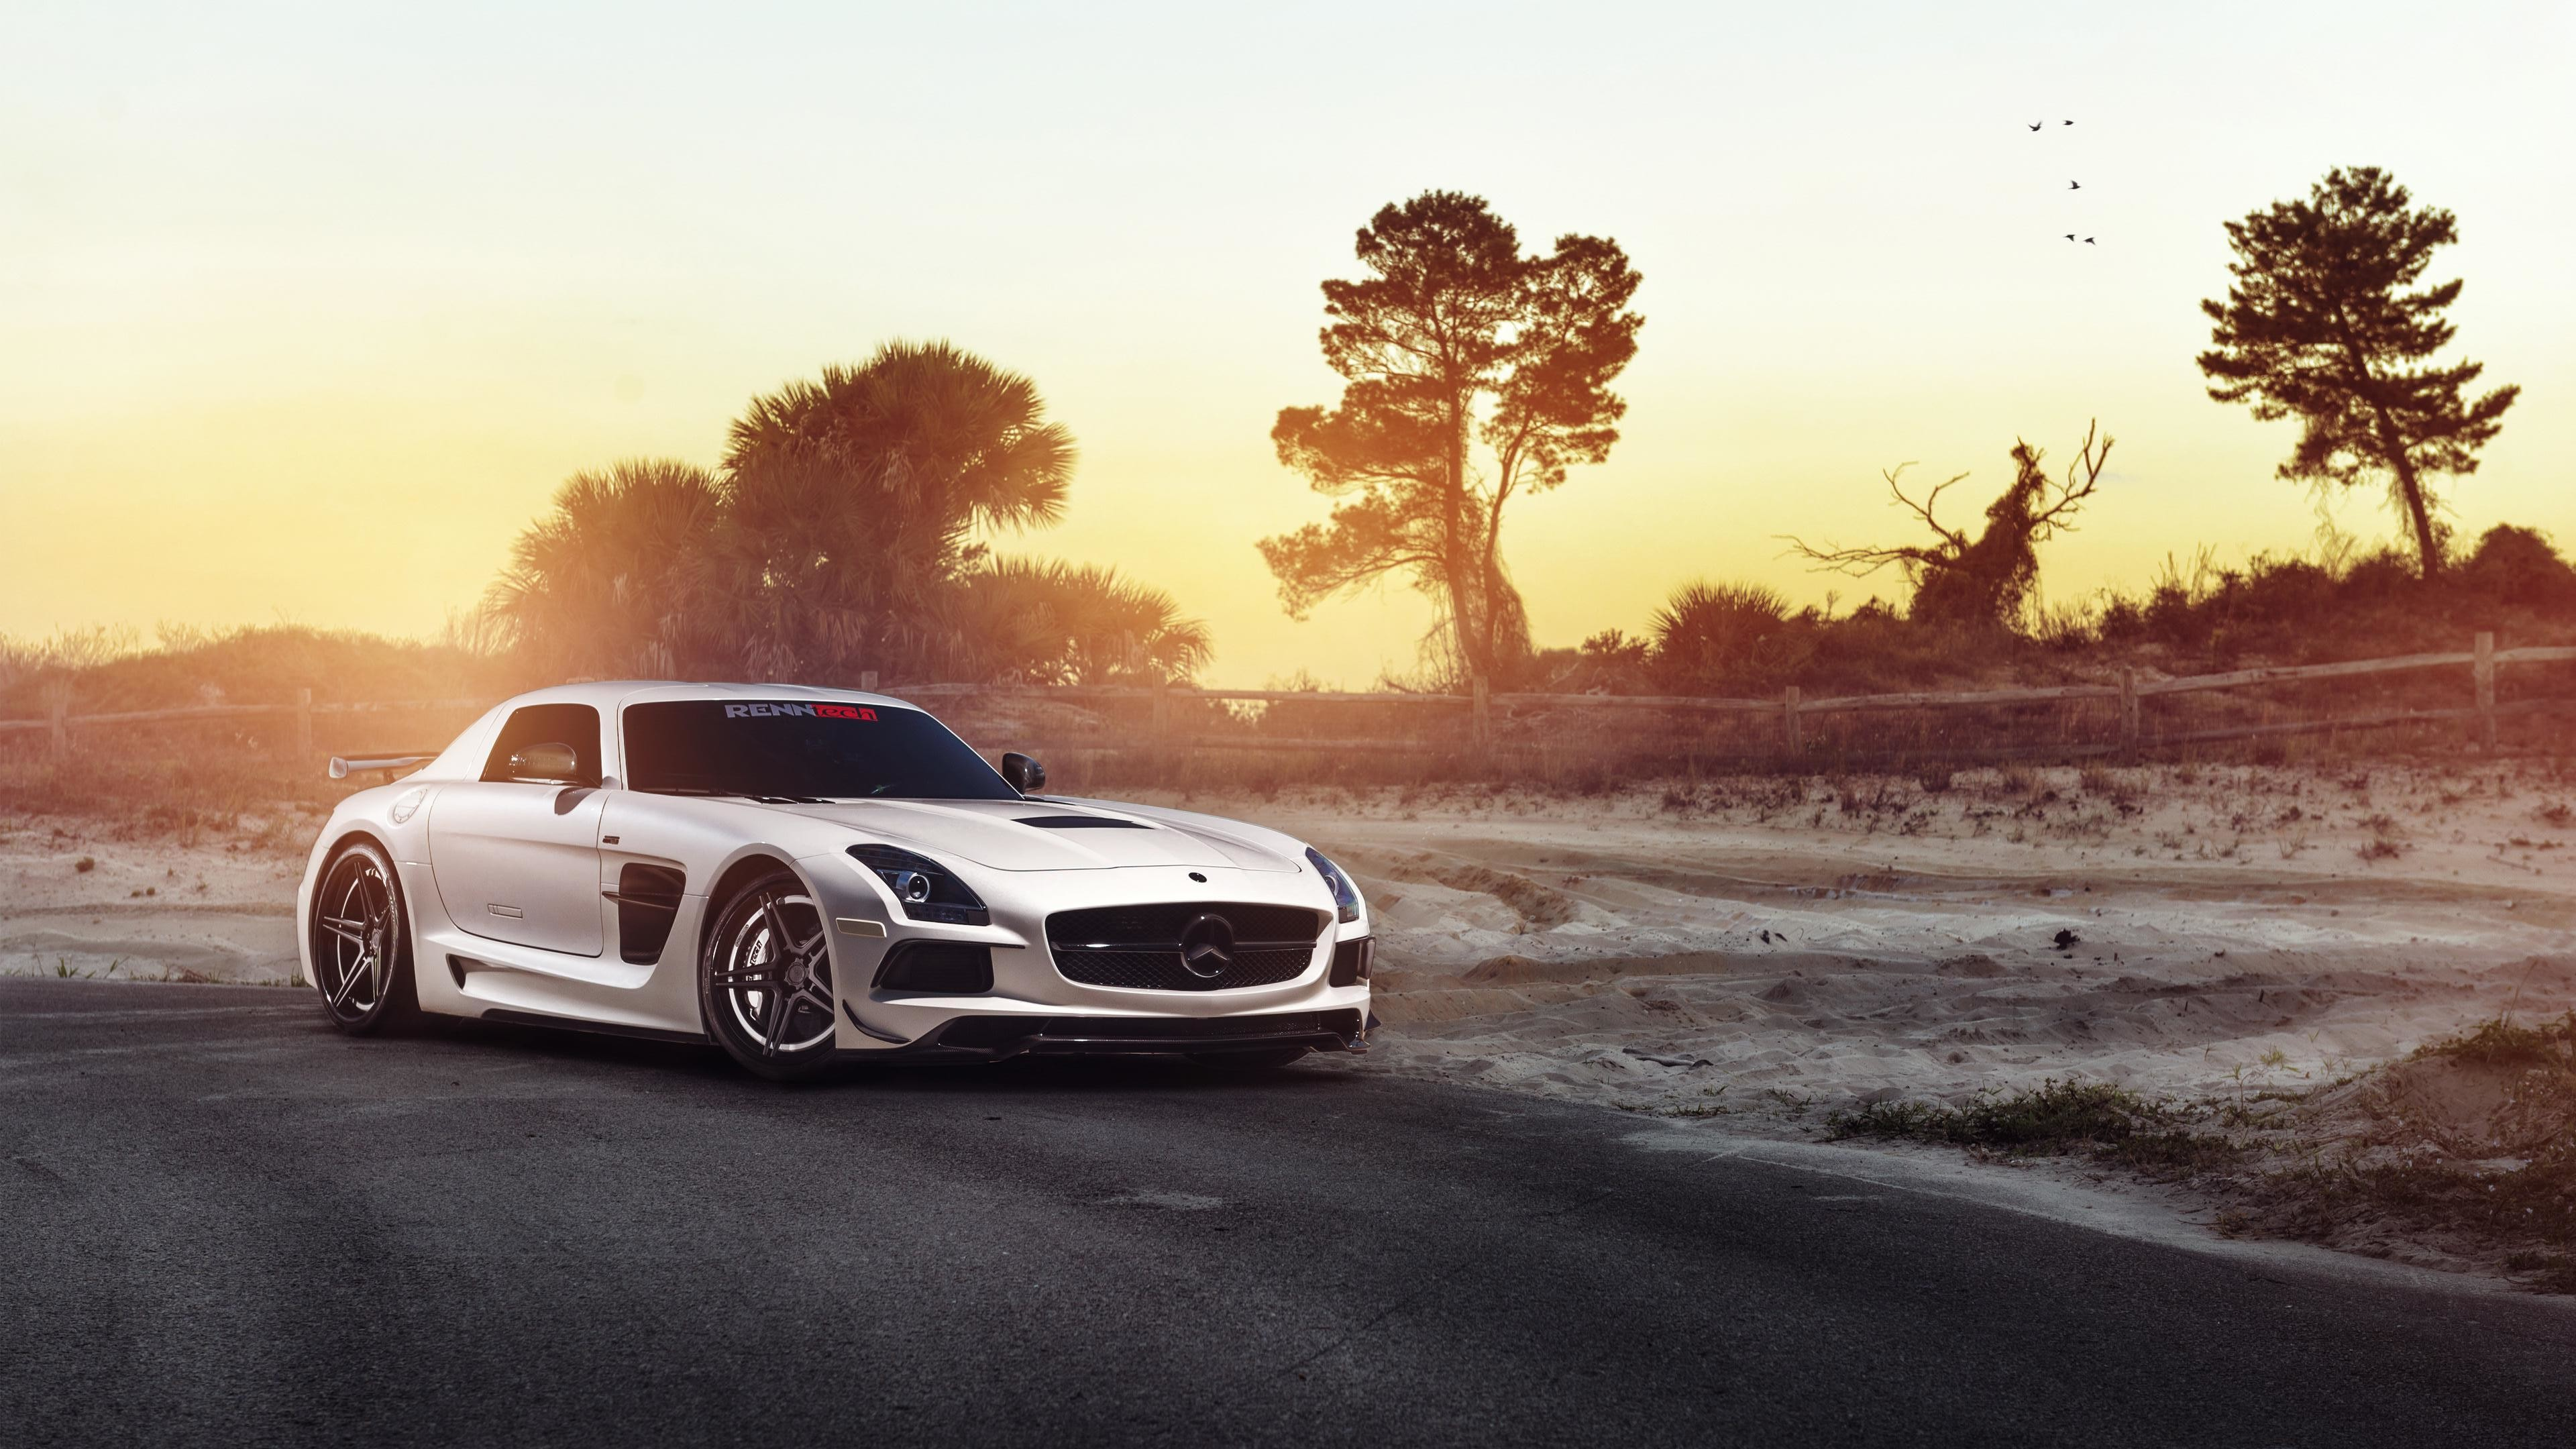 3840x2160 MERCEDES-BENZ SLS AMG BLACK SERIES SUPERCAR HD WALLPAPER